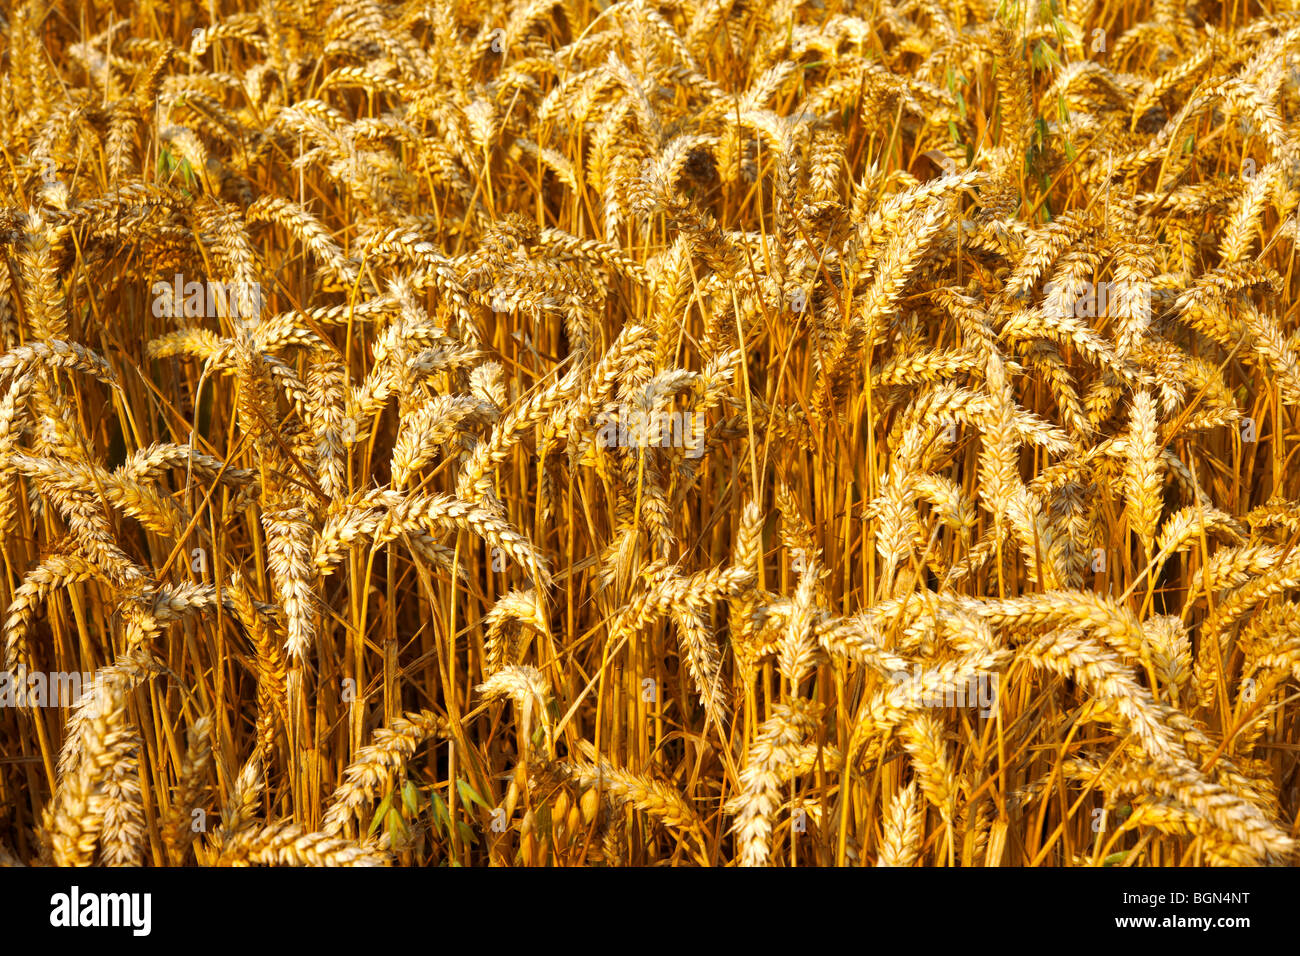 Ripe wheat (corn) in a filed ready to harvest - Stock Image